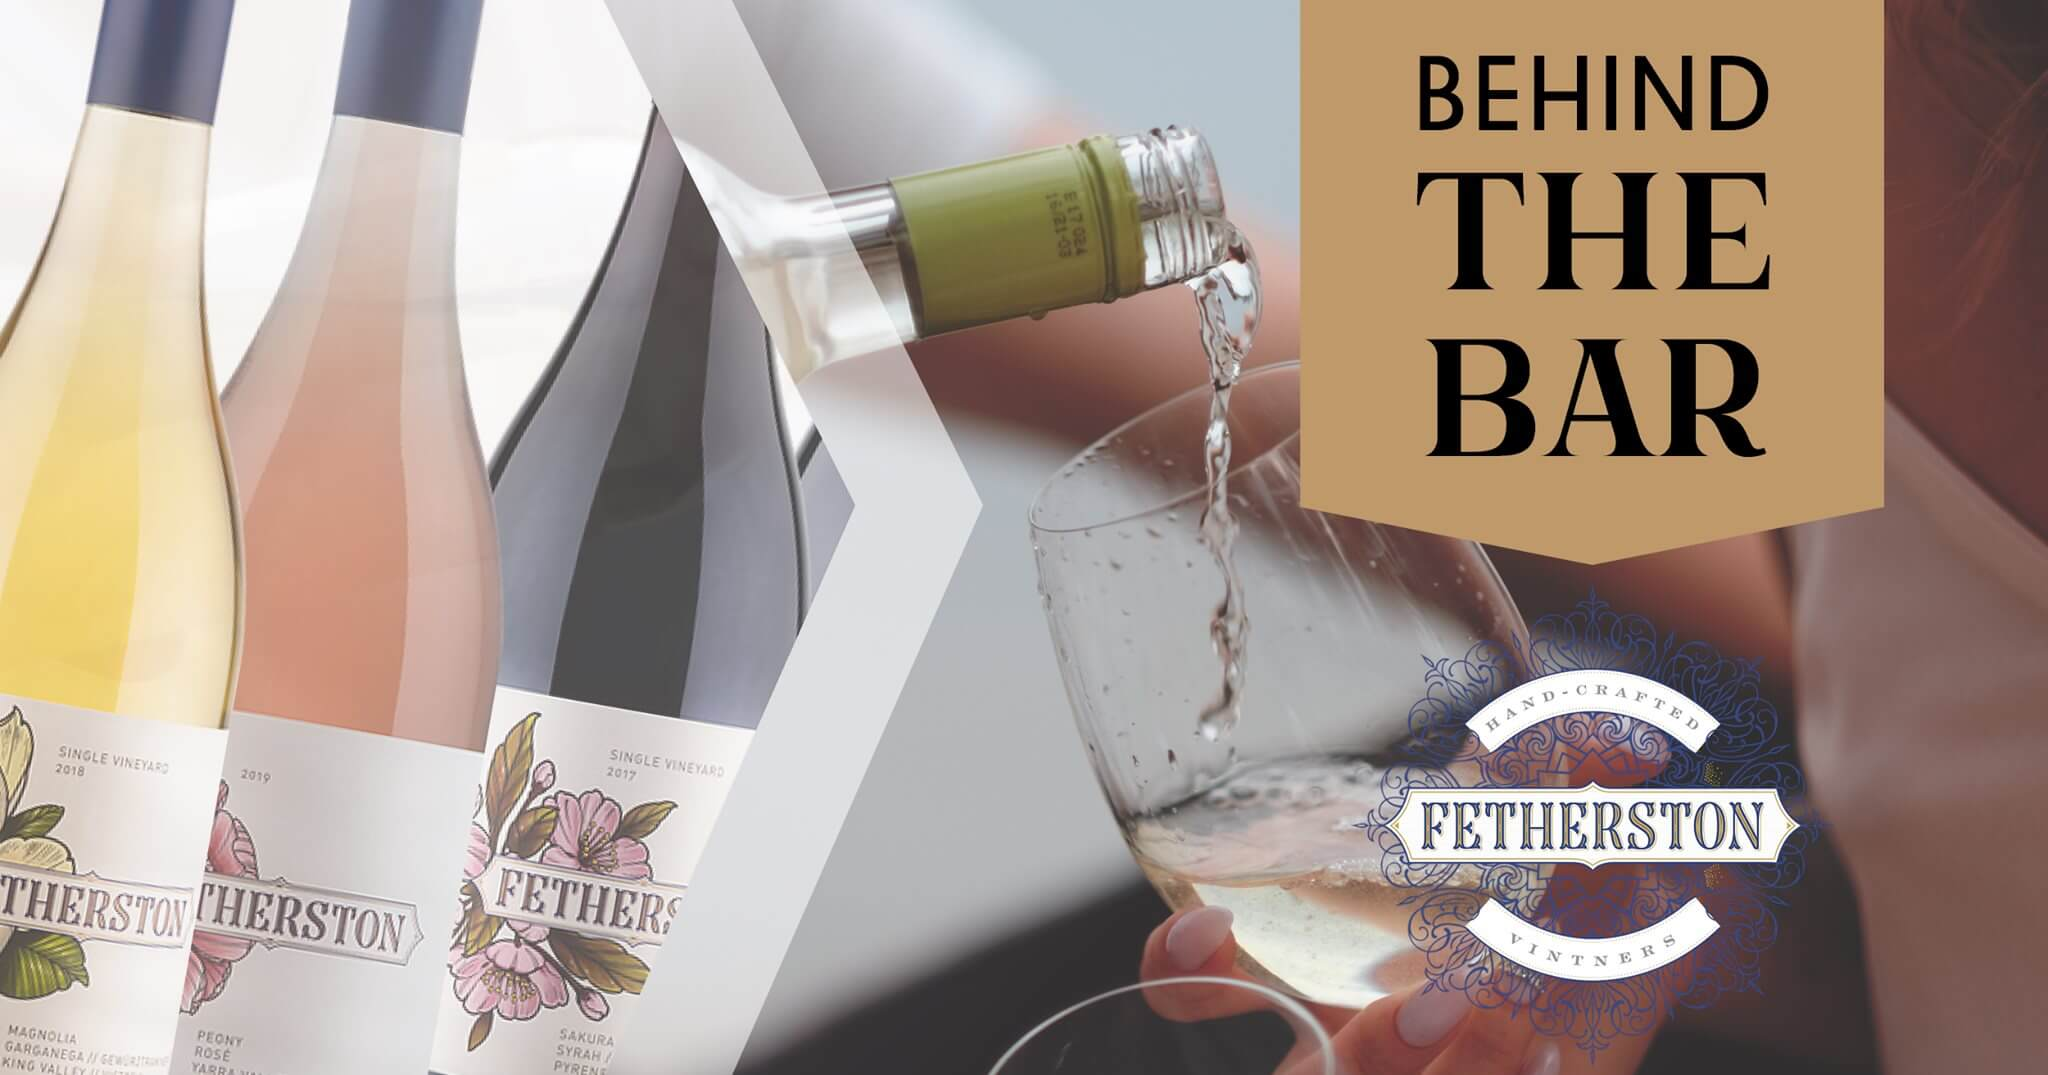 Behind The Bar - Fetherston Vintners - Friday July 3rd